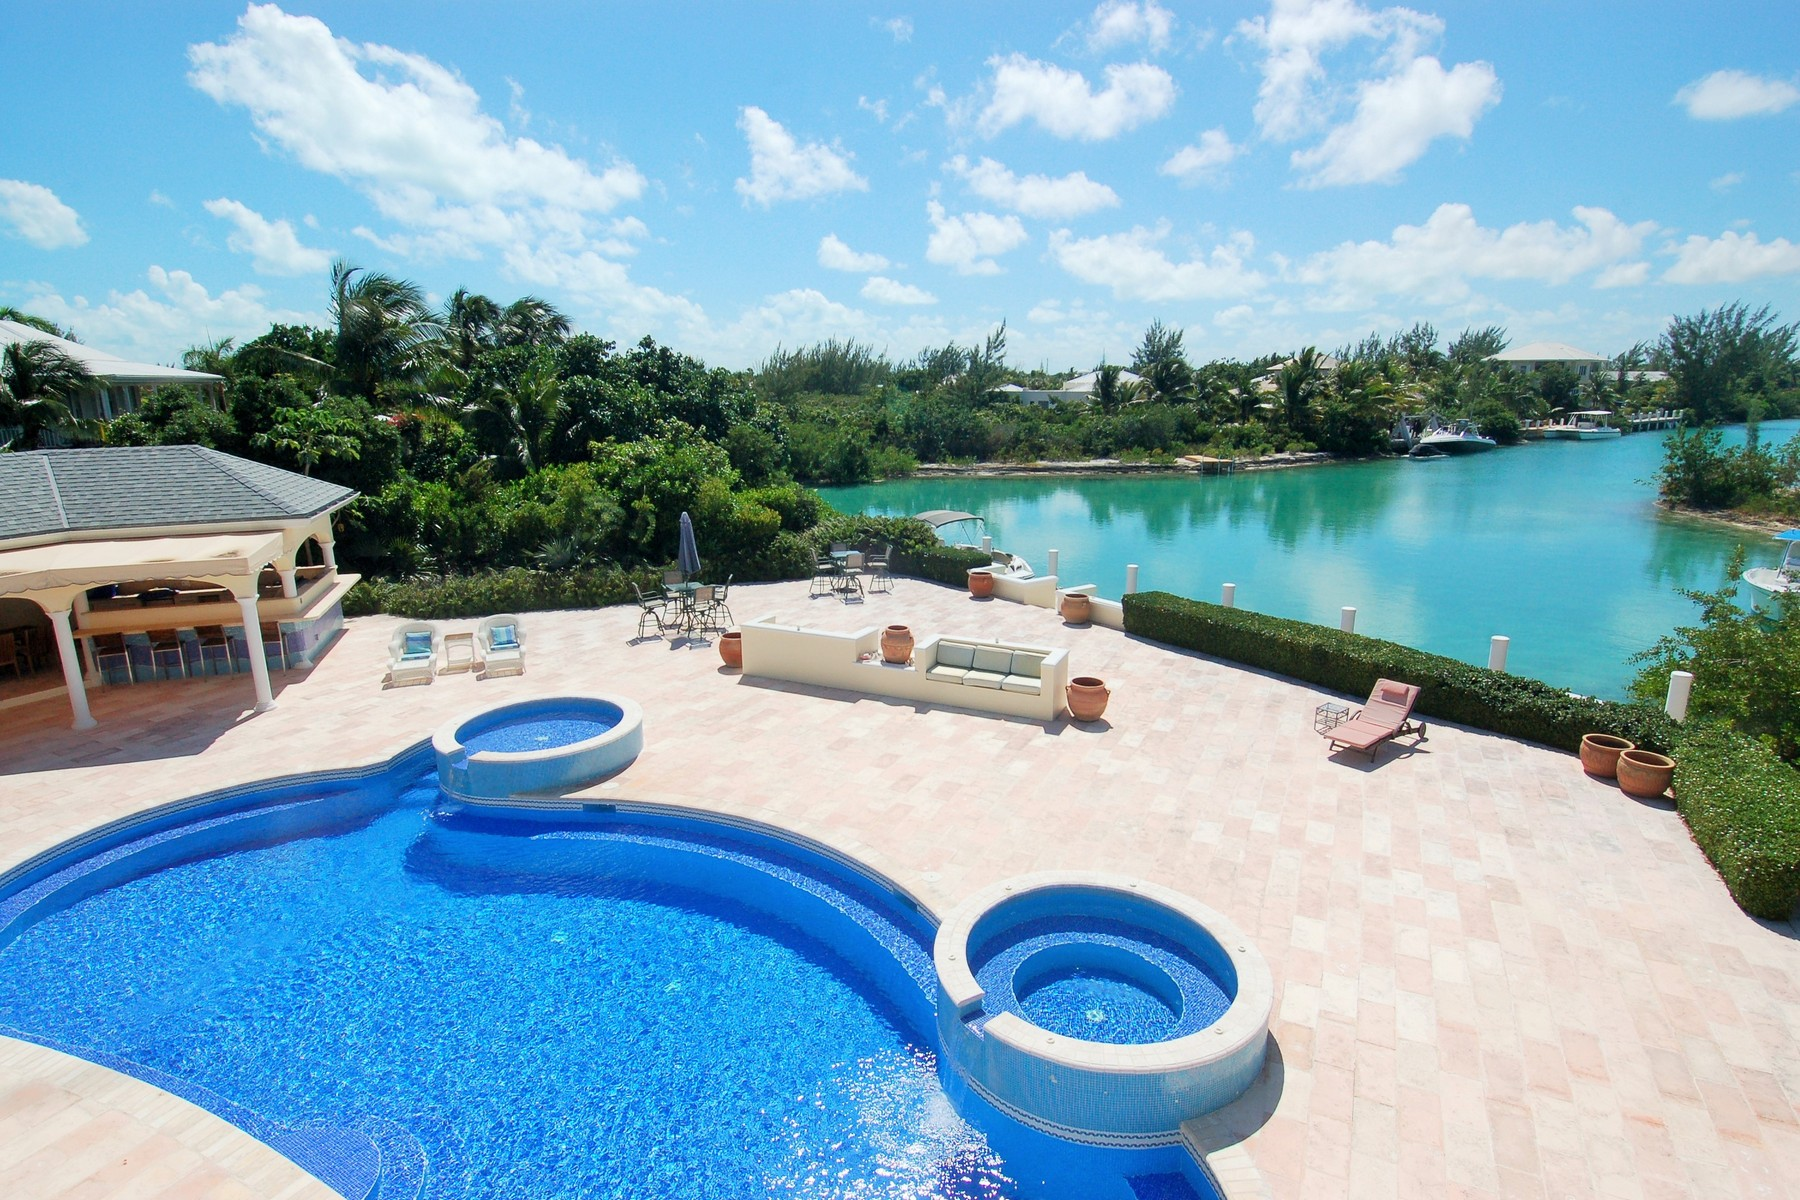 Additional photo for property listing at Rafters Leeward, Providenciales Turks And Caicos Islands